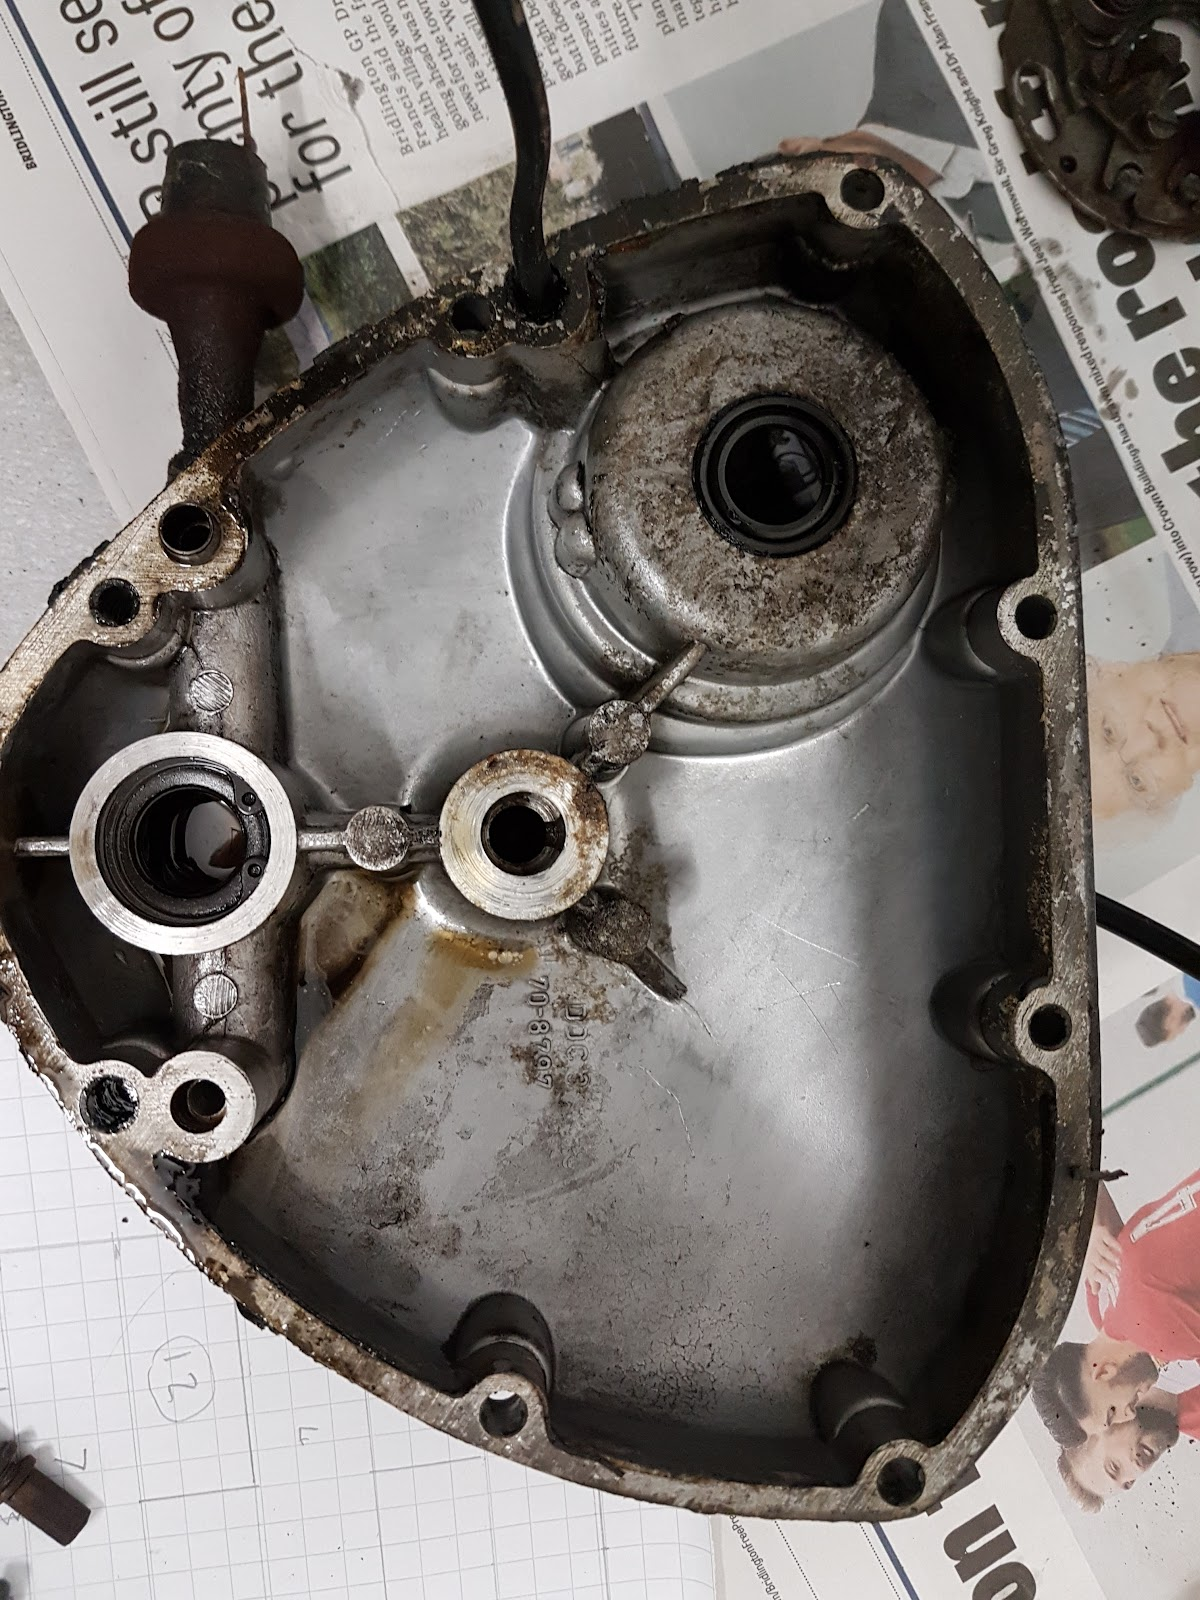 Inside the timing chest cover of a Triumph Bonneville T120.